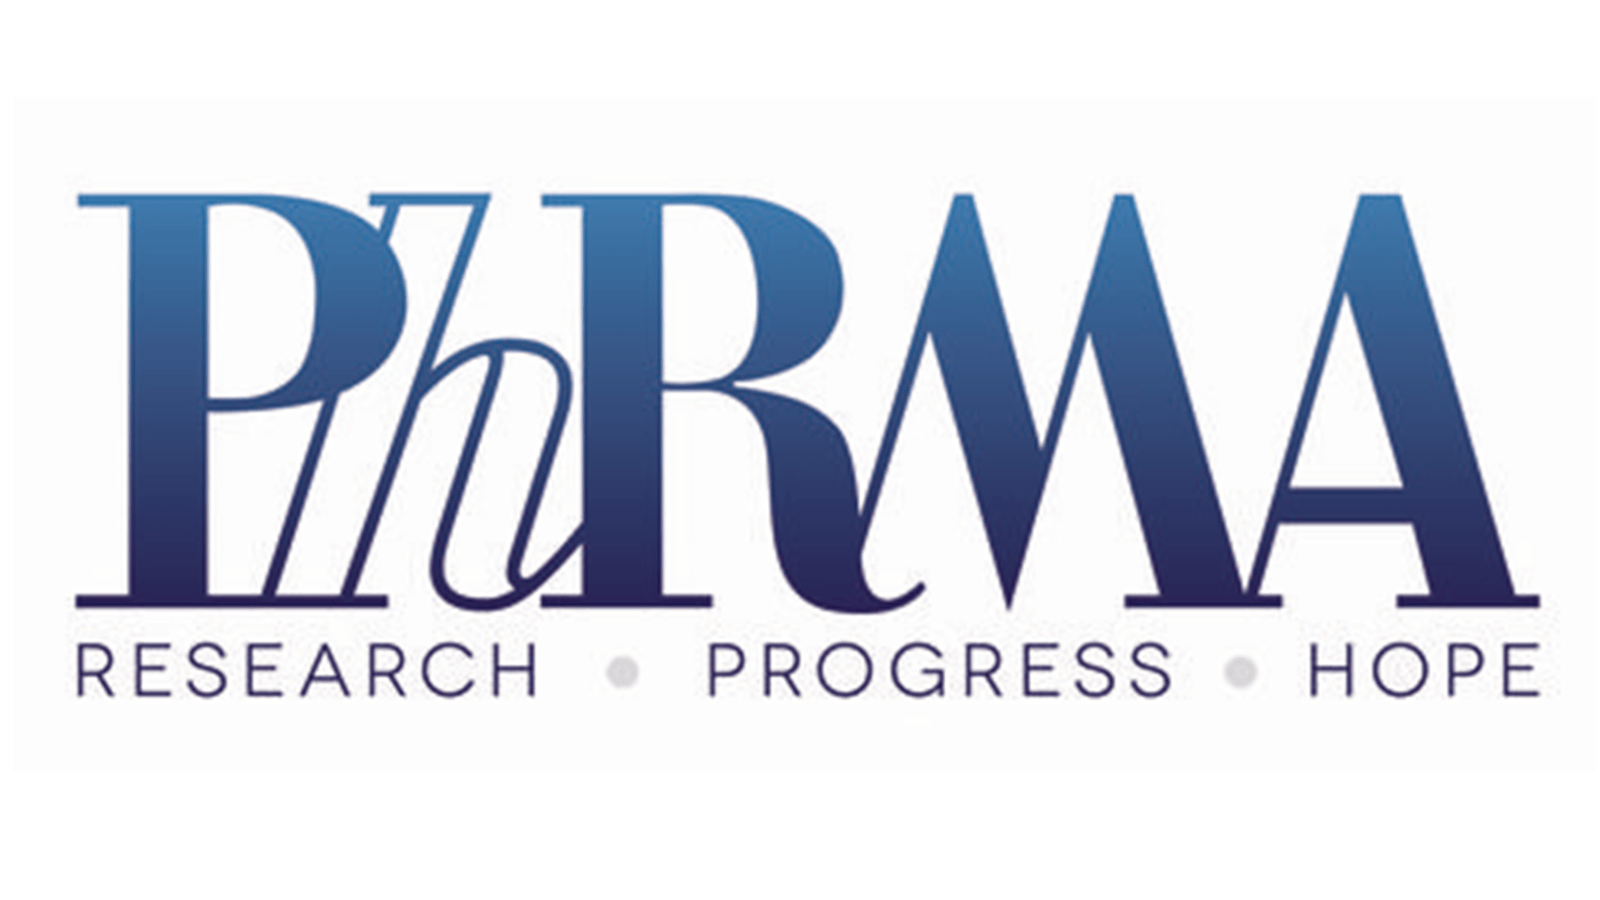 PhRMA Logo for the Pharmaceutical Research and Manufacturers of America